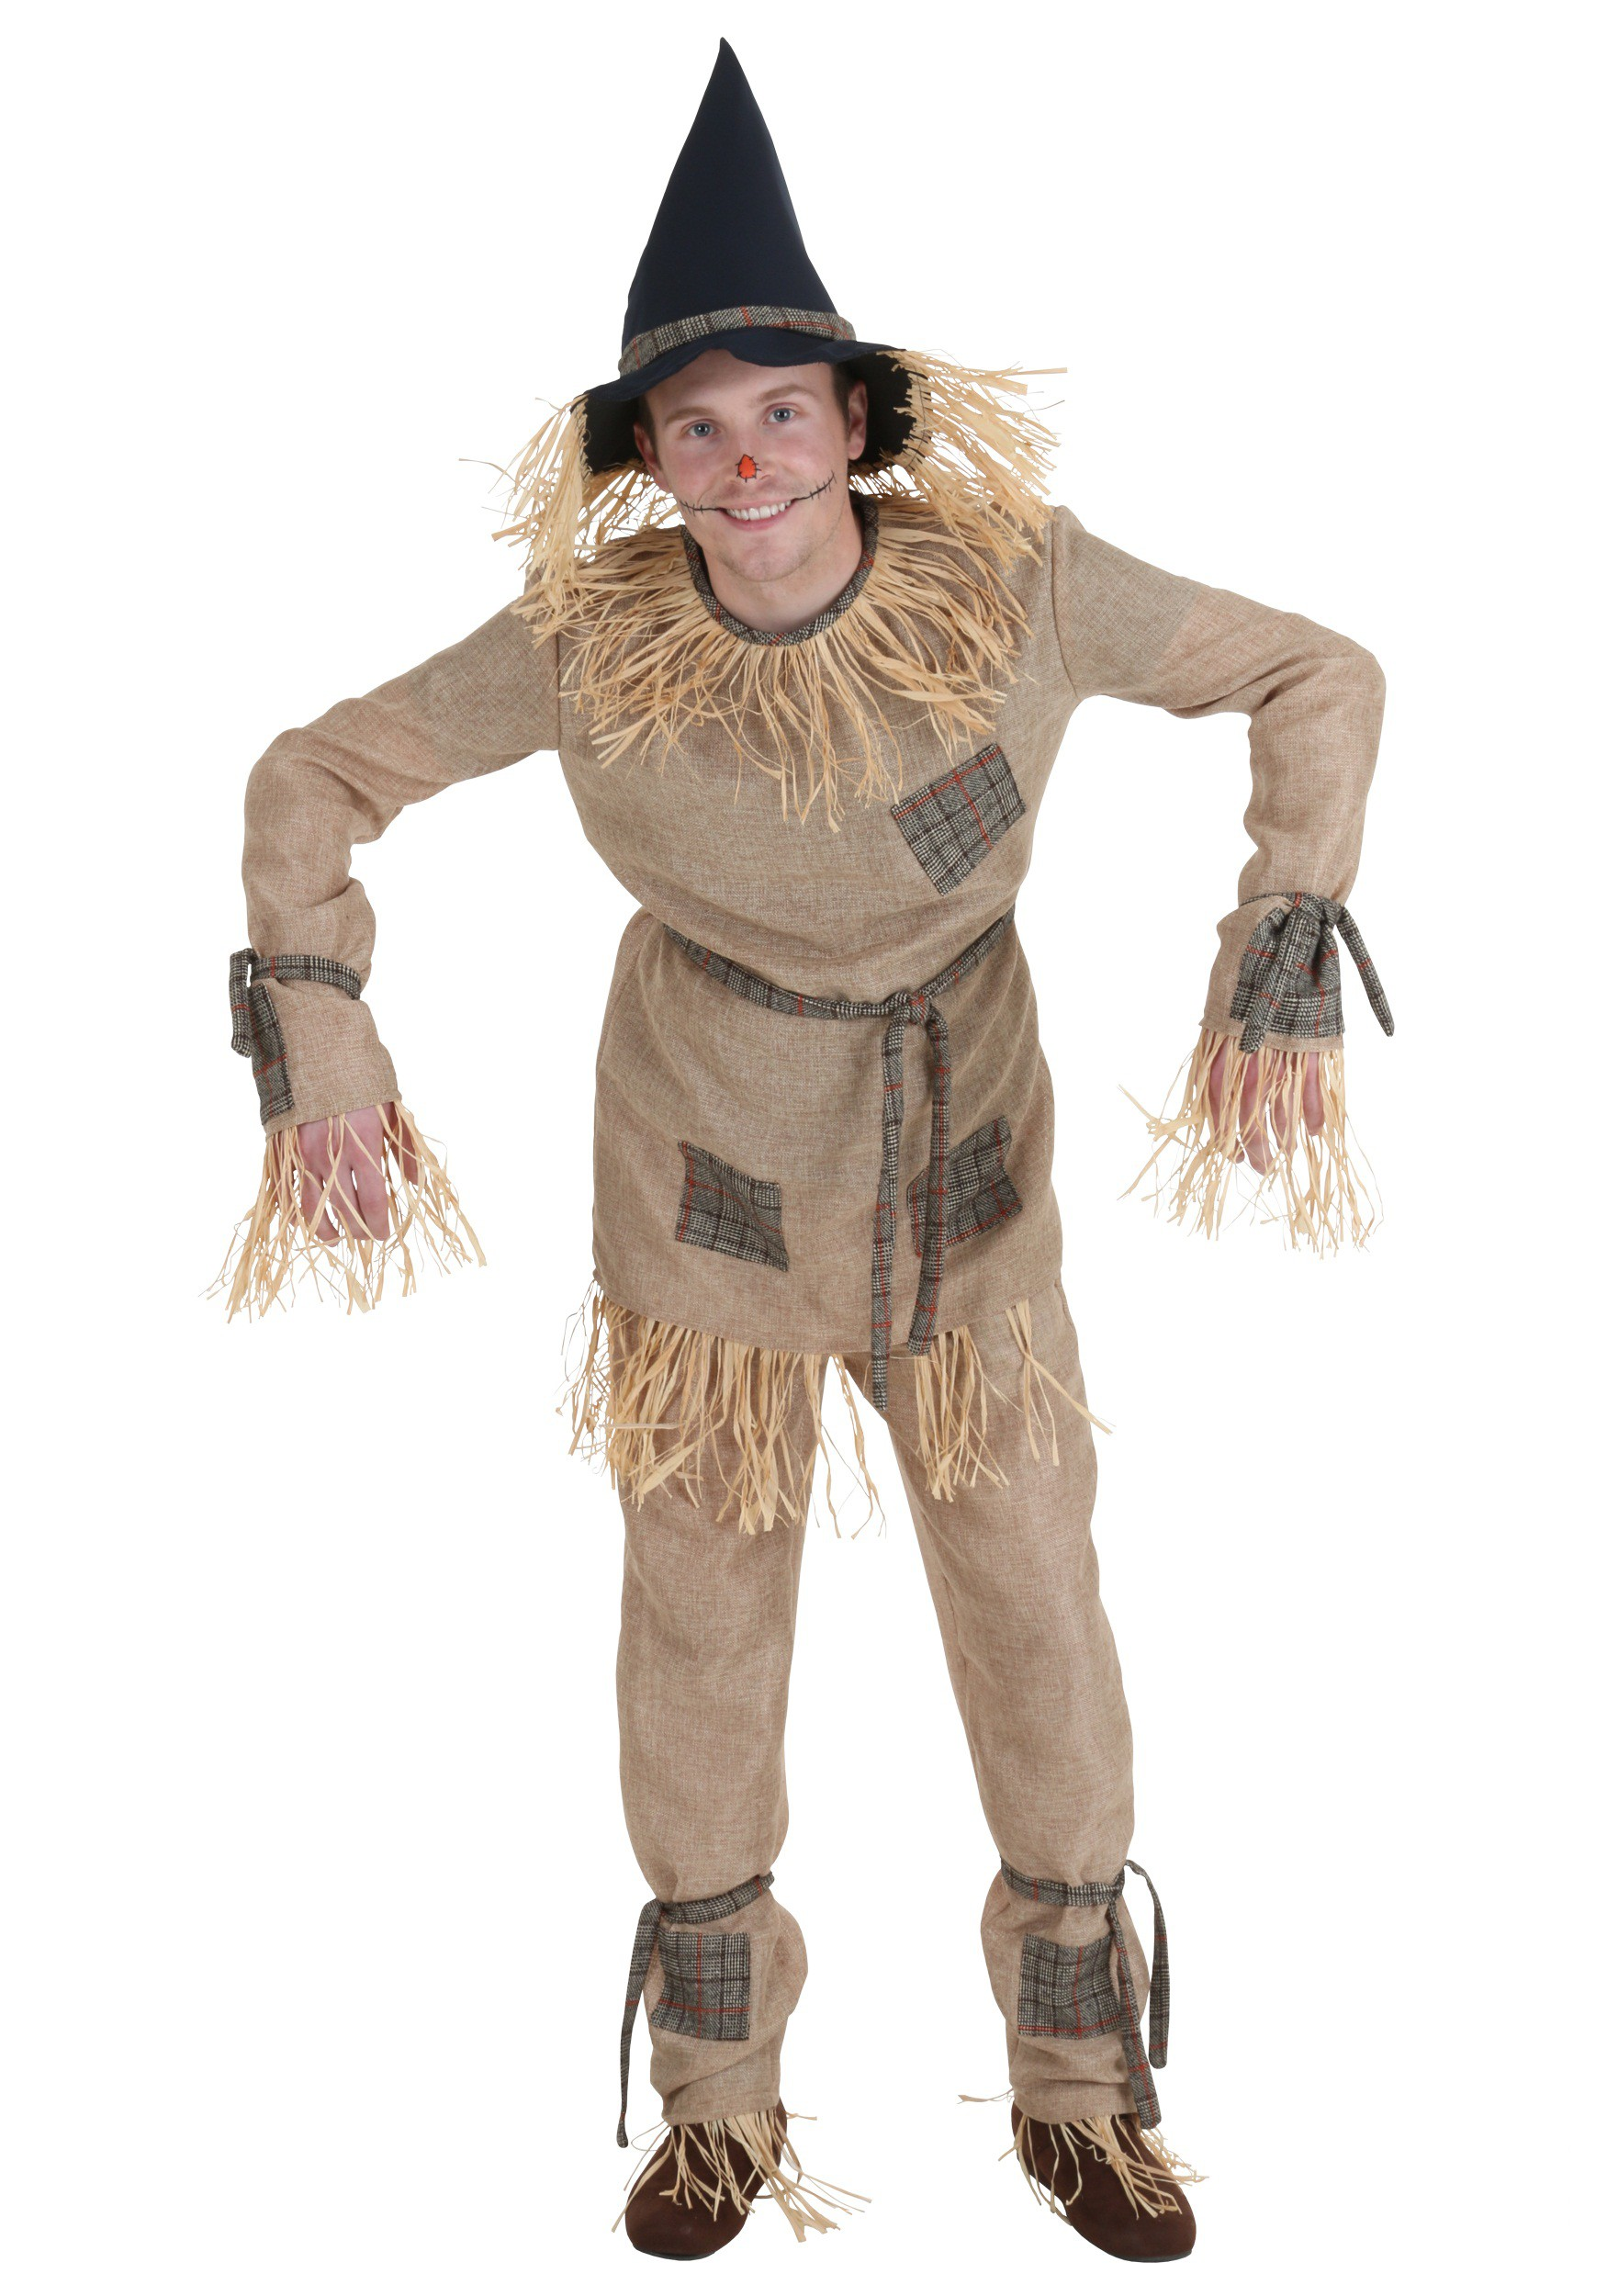 Plus_Size_Silly_Scarecrow_Costume_2X